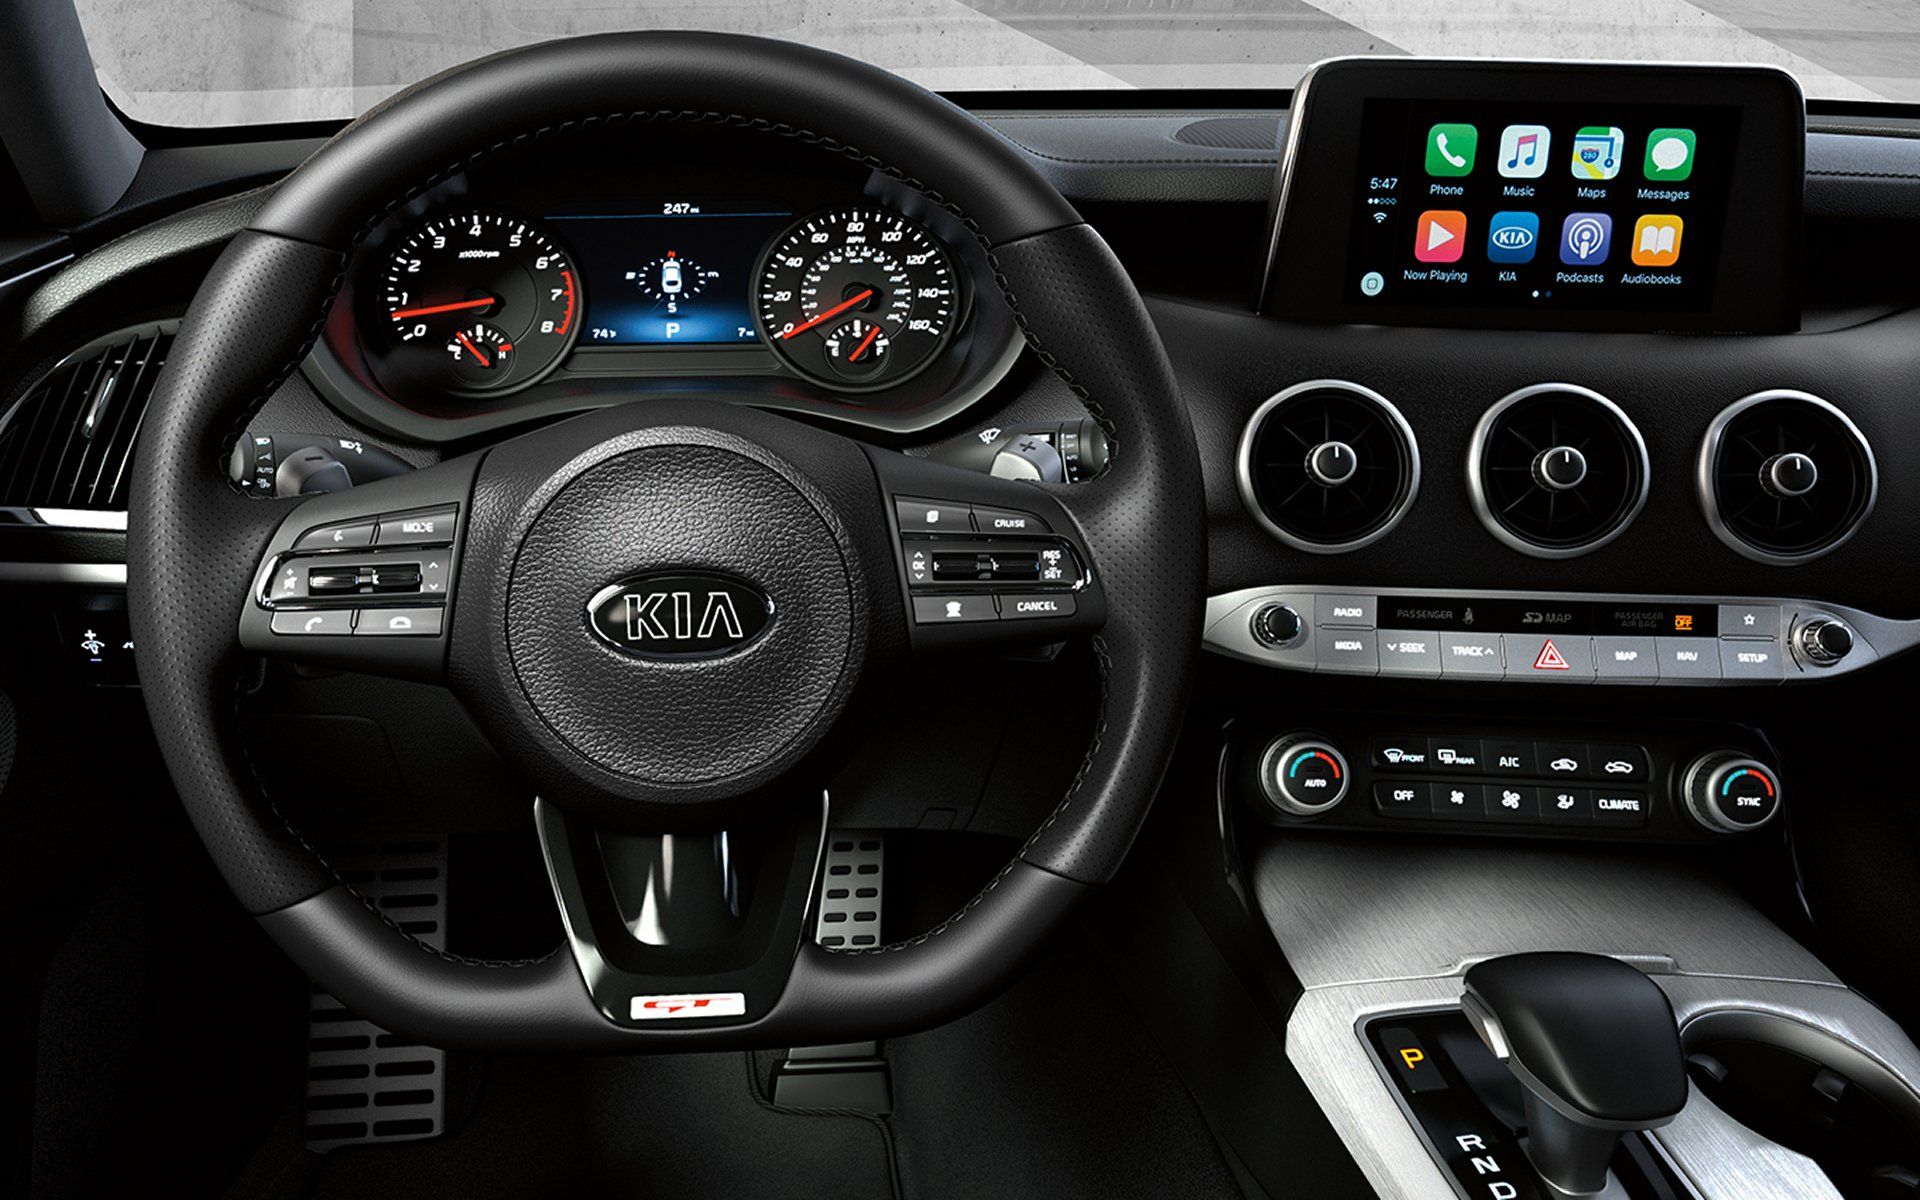 You Ll Feel Right At Home With These Interior Features On The Kia Stinger Kia Stinger Kia Car Repair Service